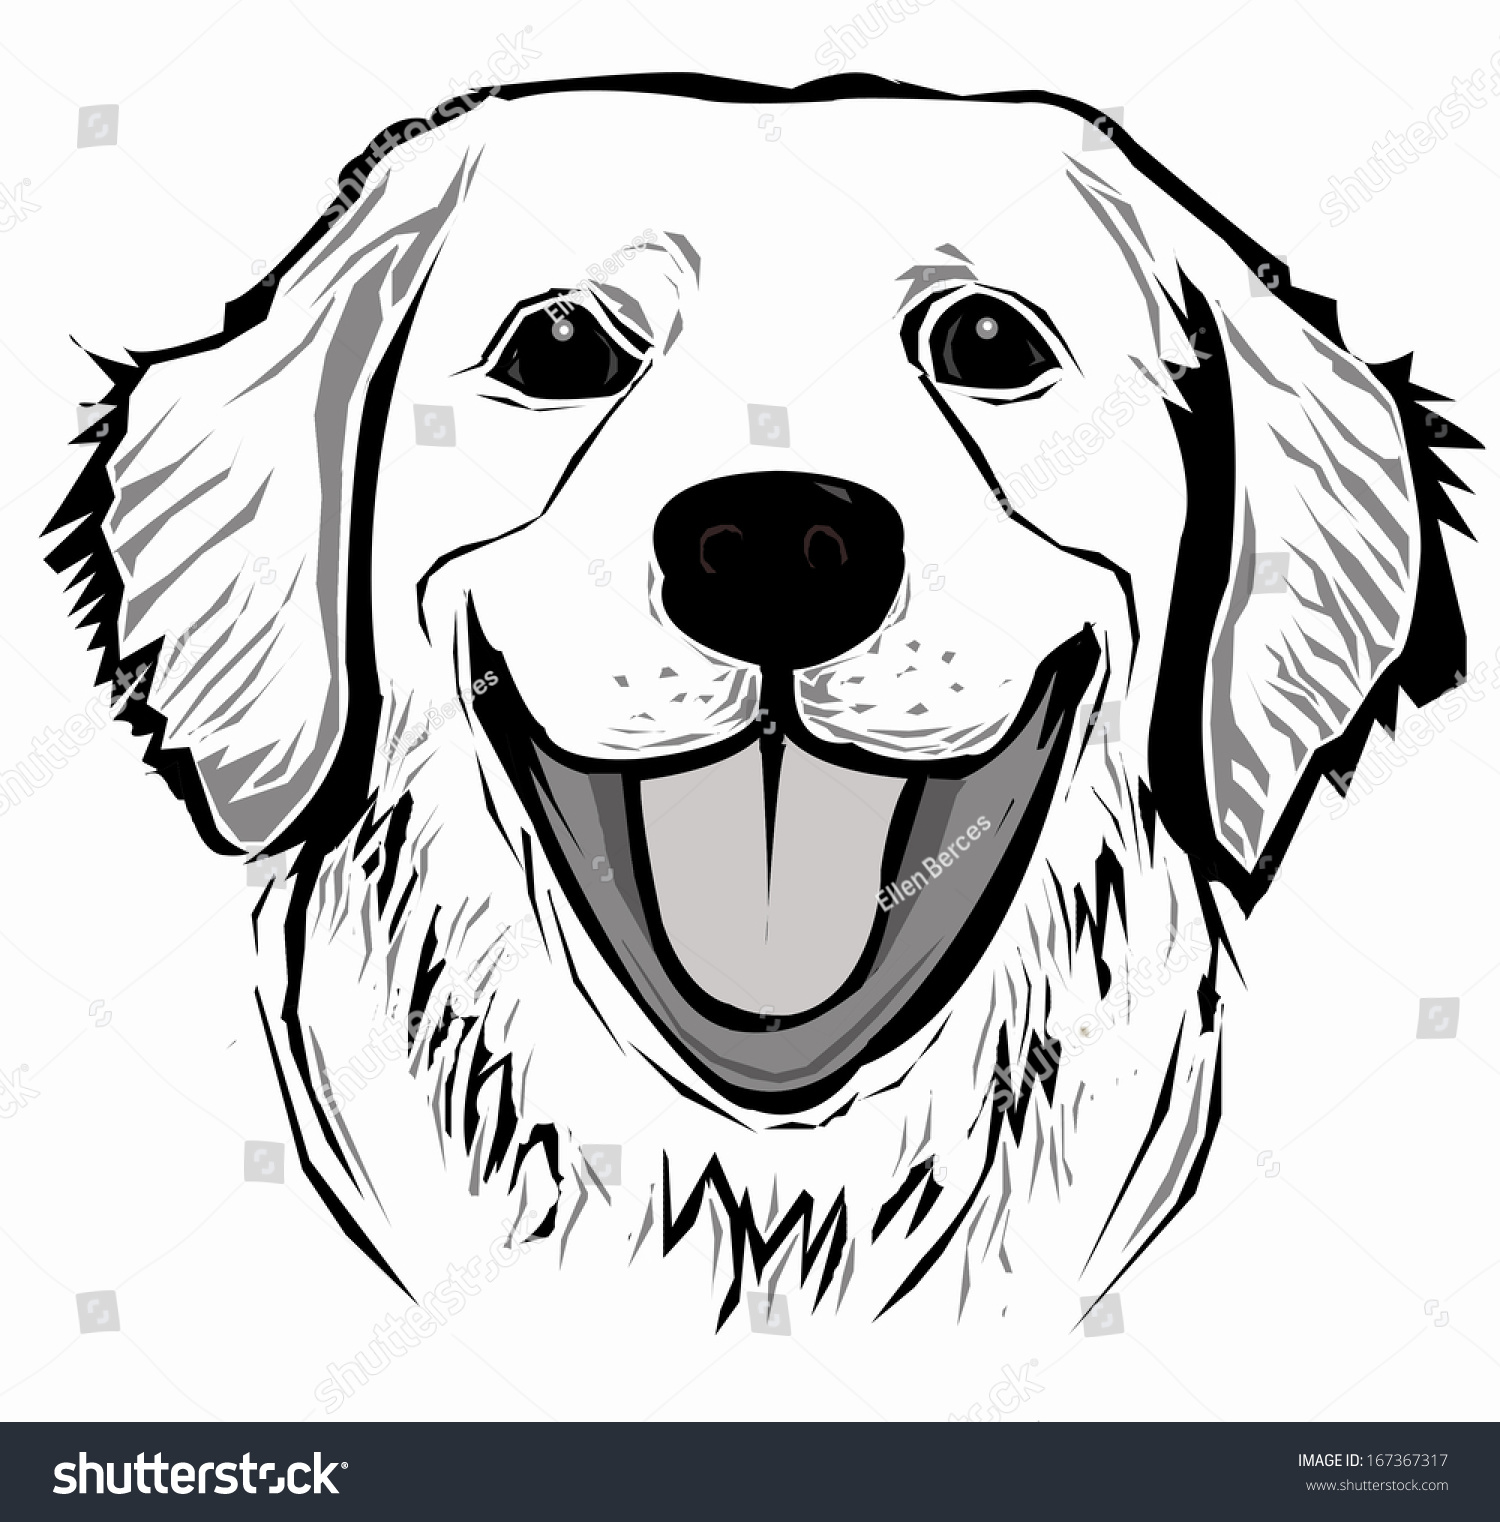 Line Drawing Of A Dog S Face : Dog face stock vector shutterstock